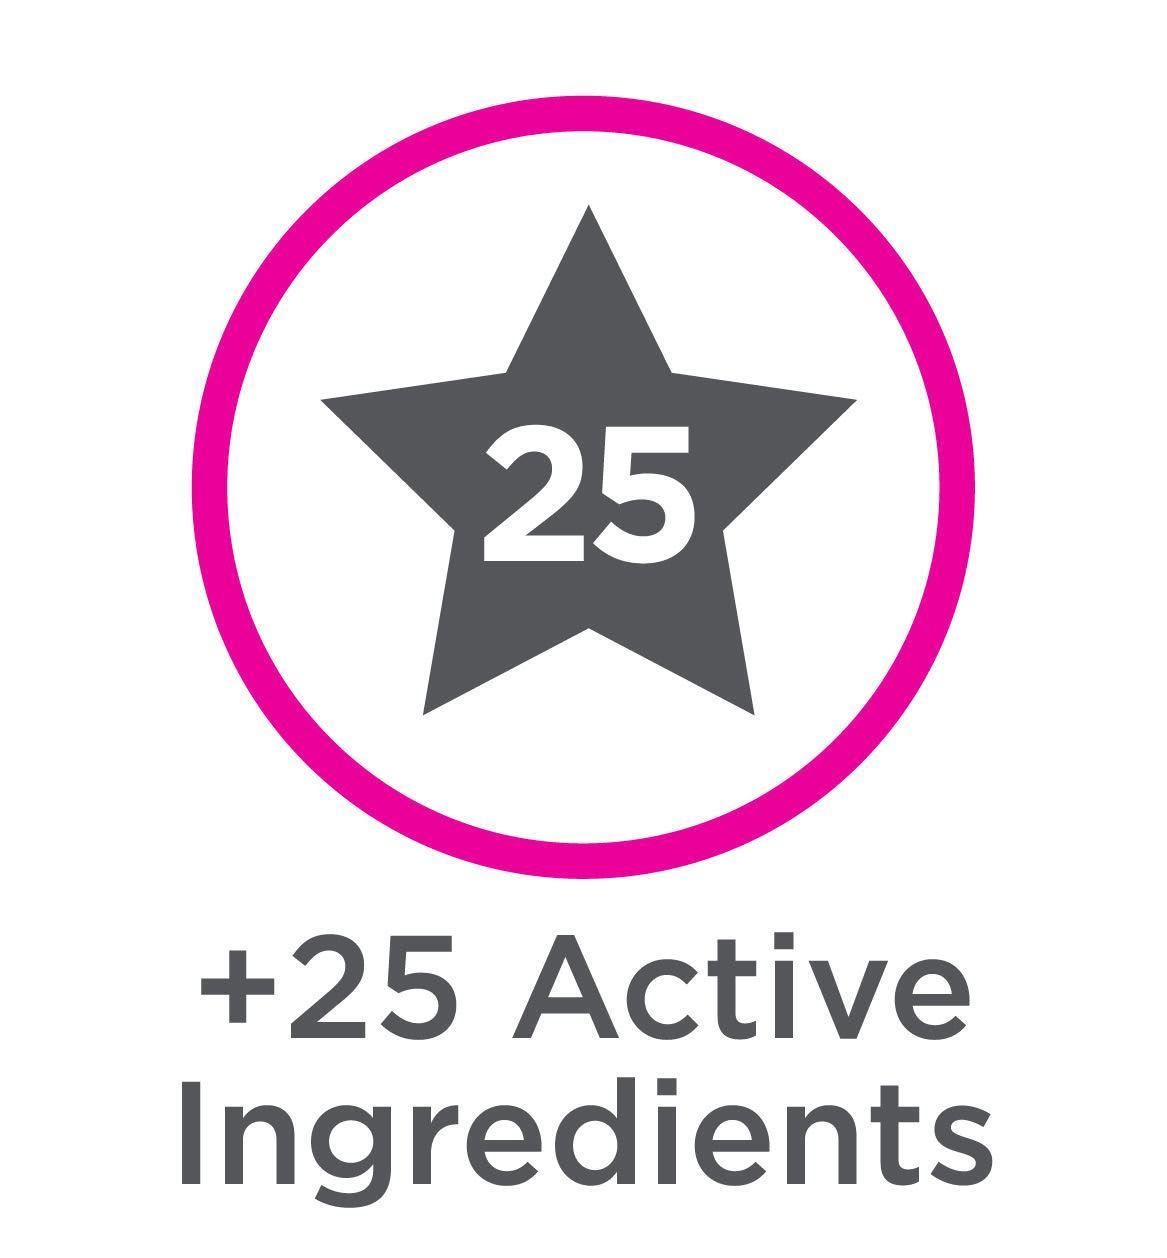 25 active ingredients